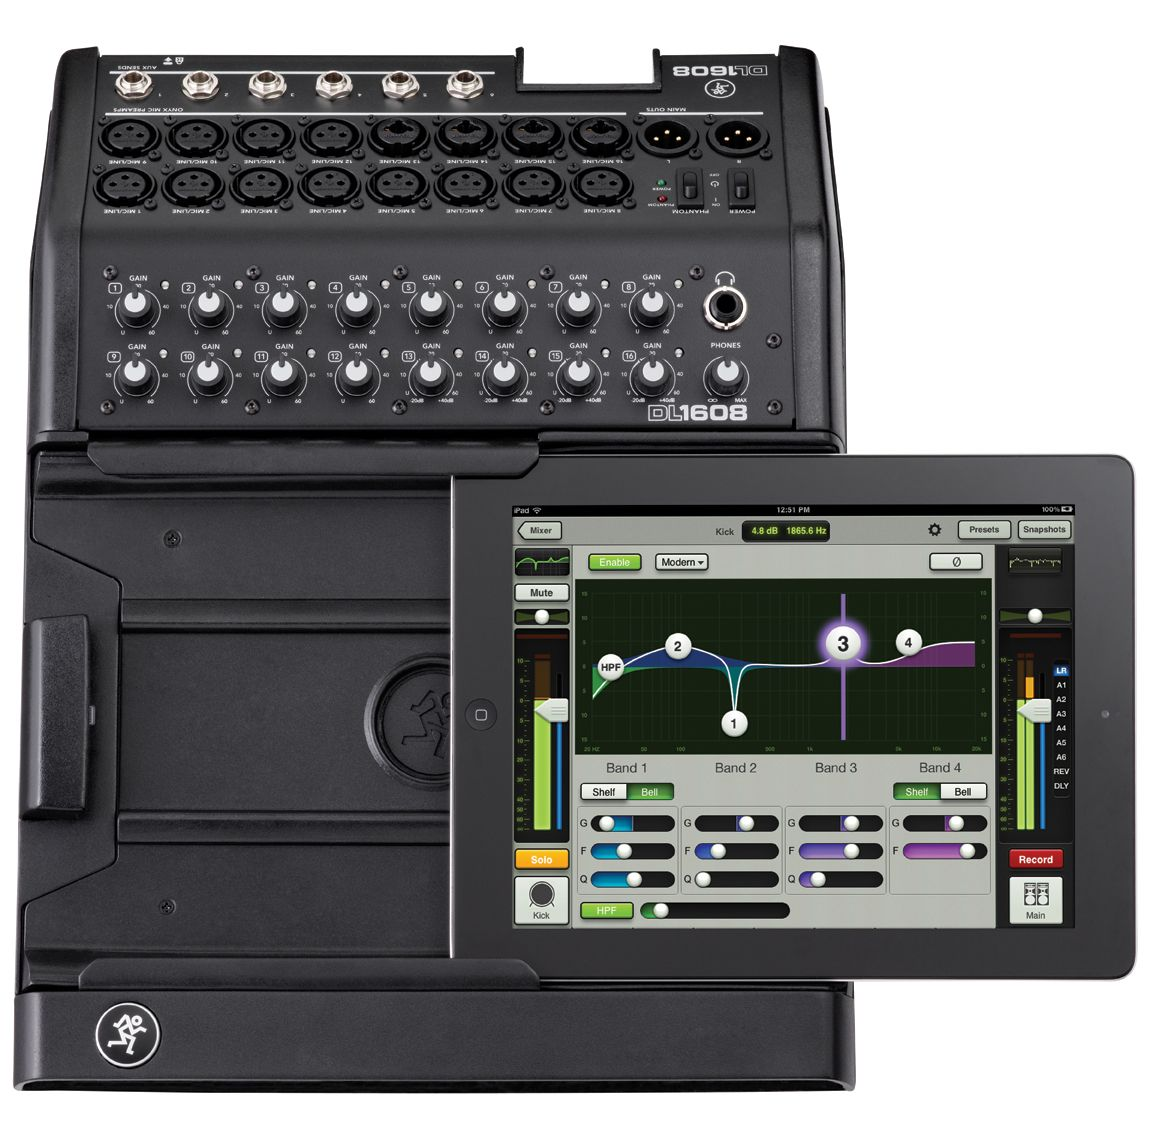 mackie dl1608 ipad mixer live sound mixer digital mixer live sound pro audio best. Black Bedroom Furniture Sets. Home Design Ideas